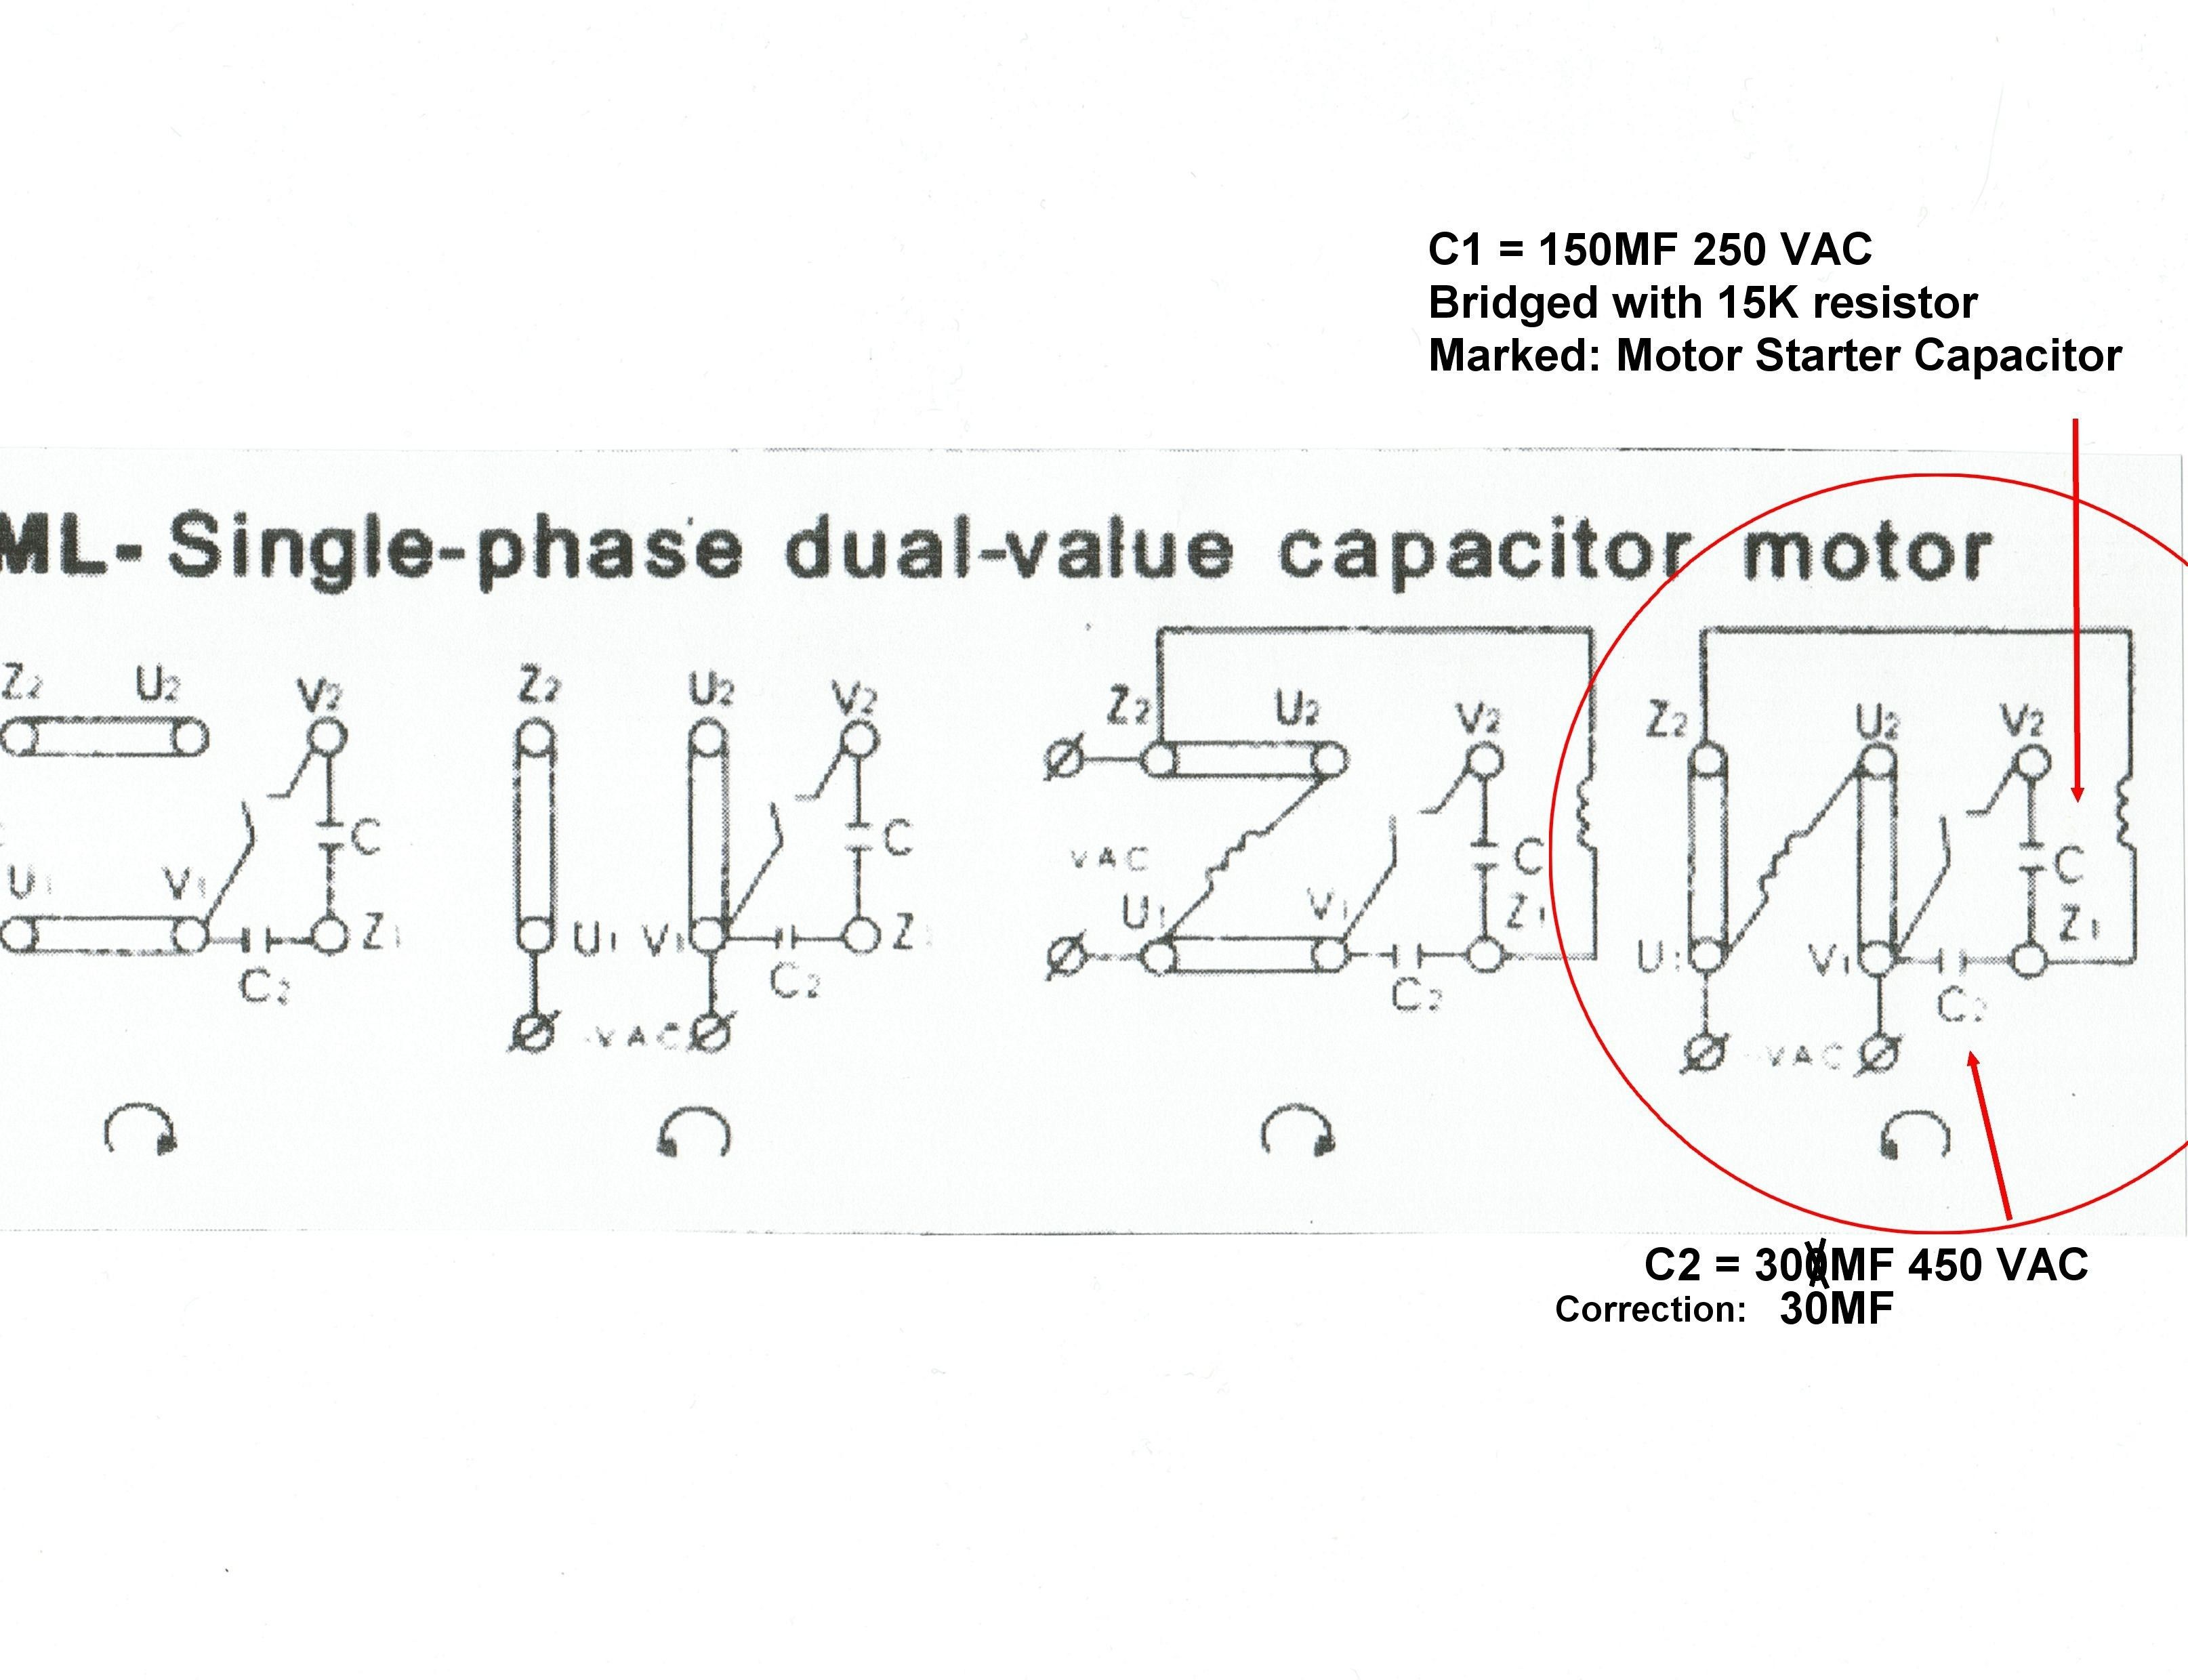 6 Lead Motor Starter Wiring Diagram - Wiring Diagrams  Lead Single Phase Motor Wiring Diagrams on